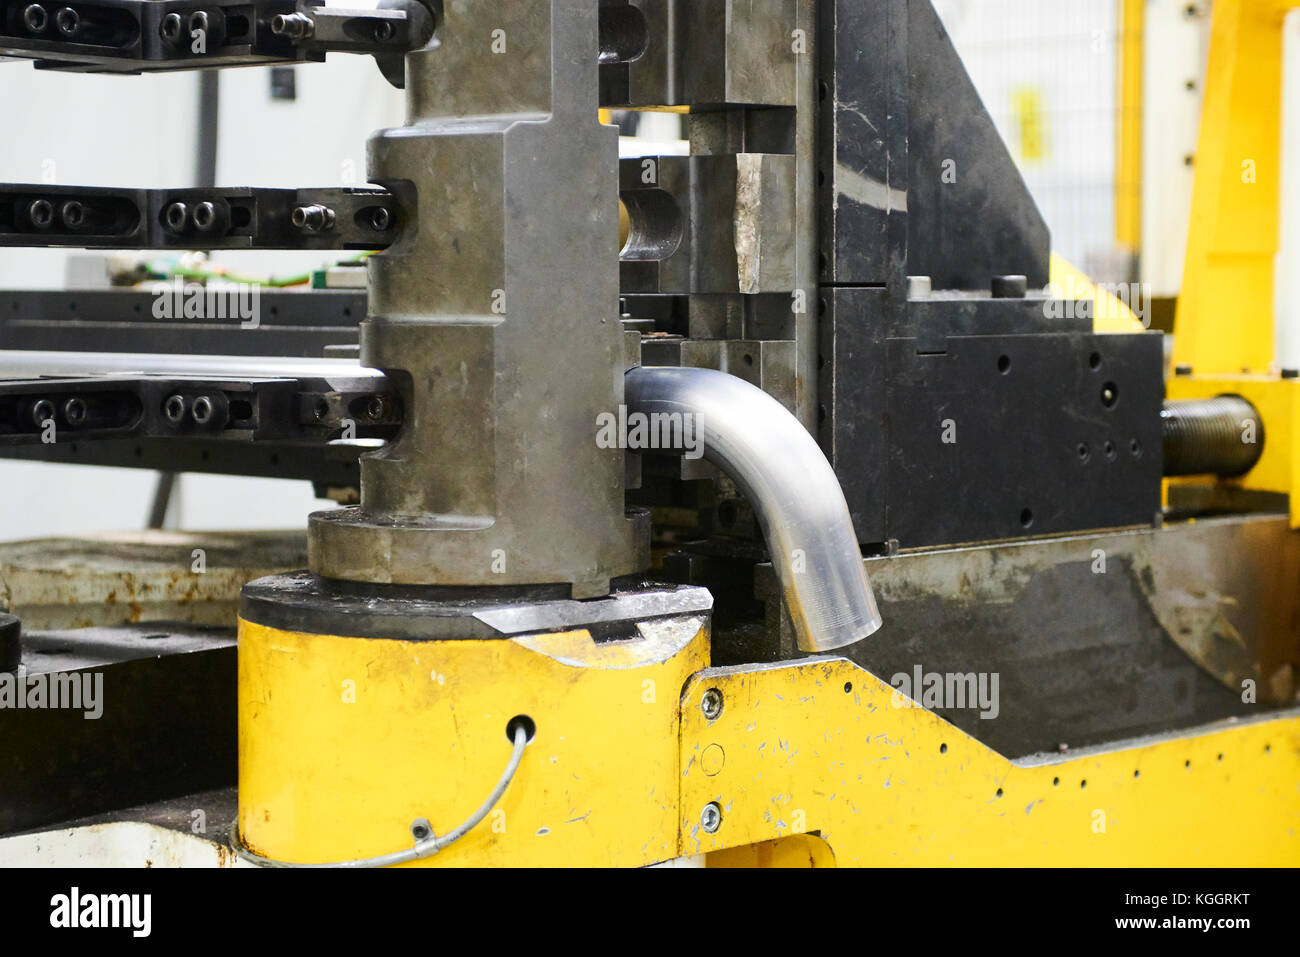 Robot bending pipe in modern factory - Stock Image